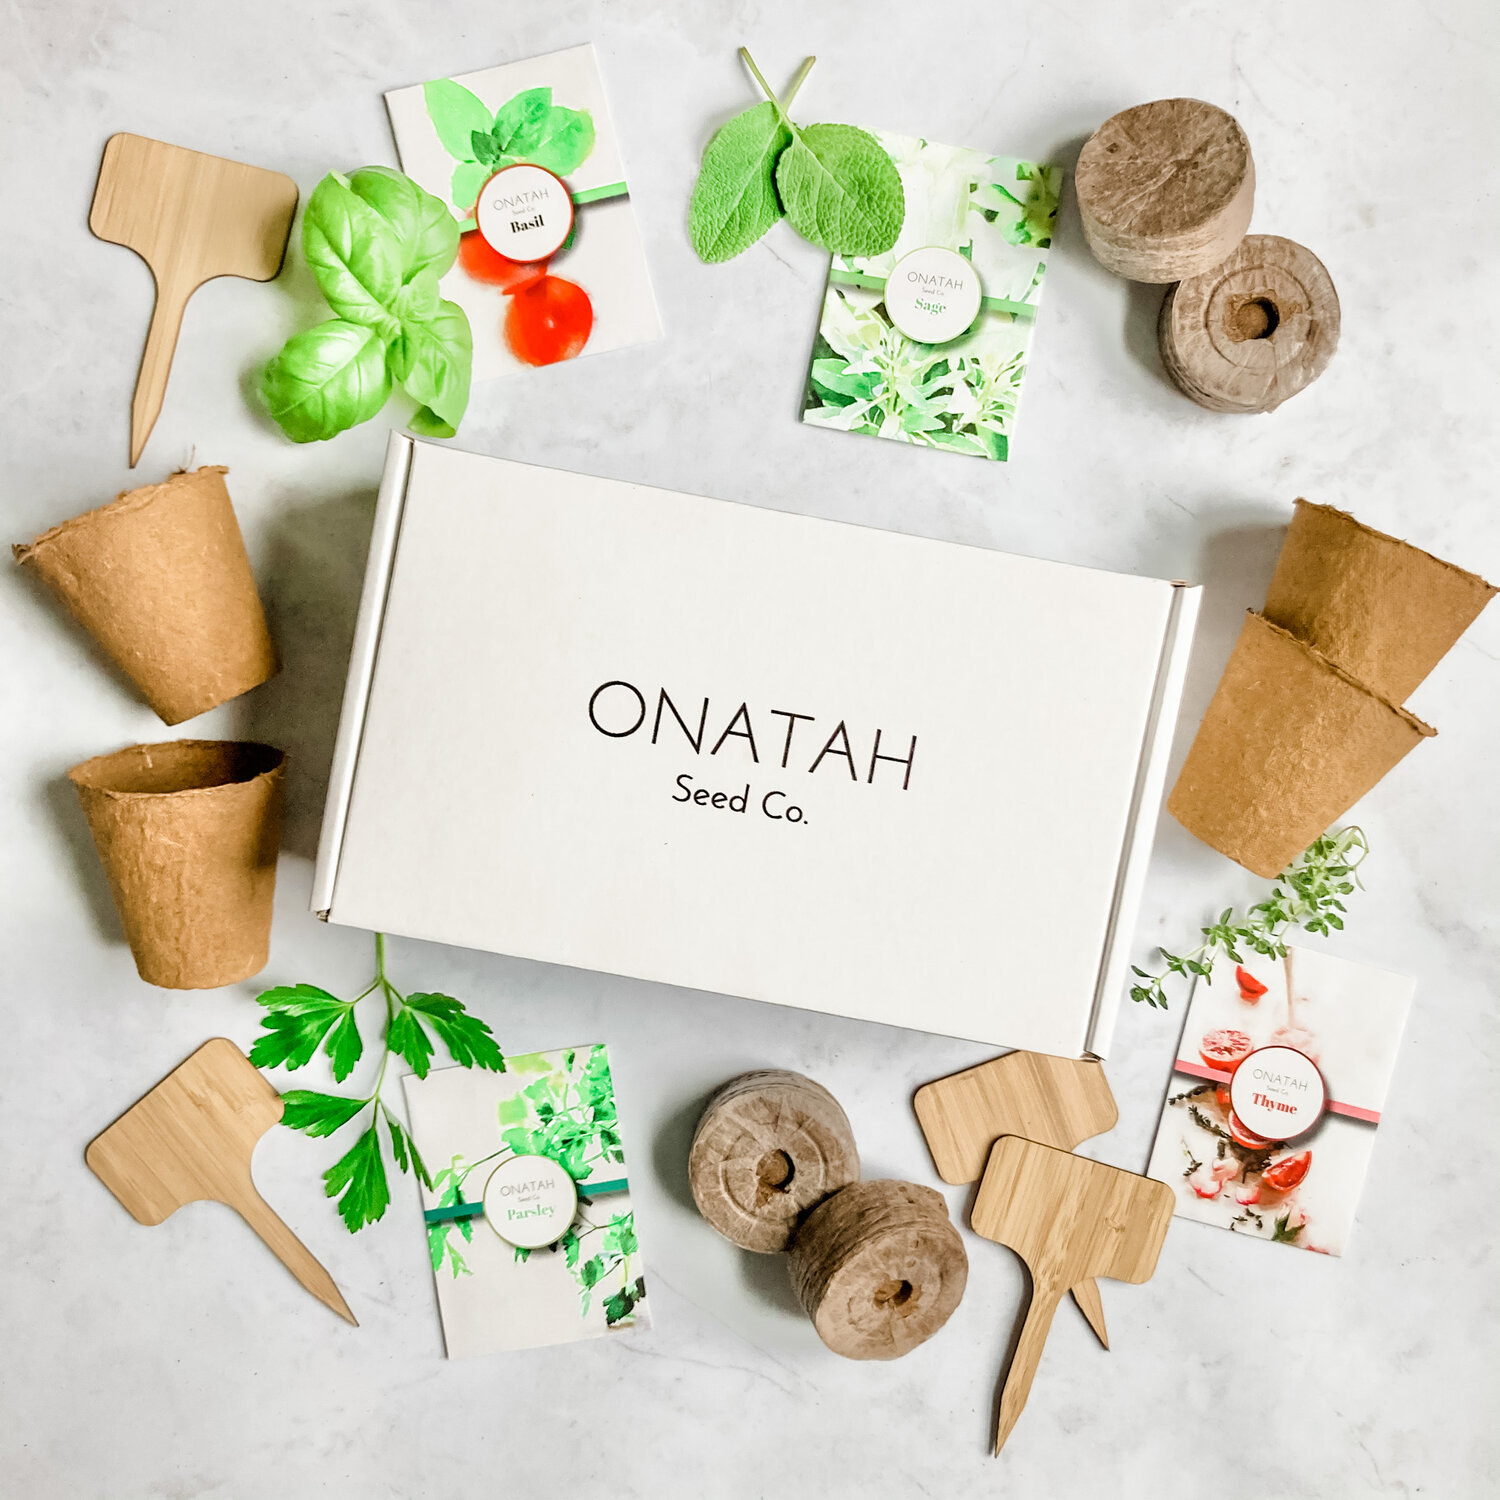 A white box that says Onatah Seed Co. on the front surrounded by garden tools